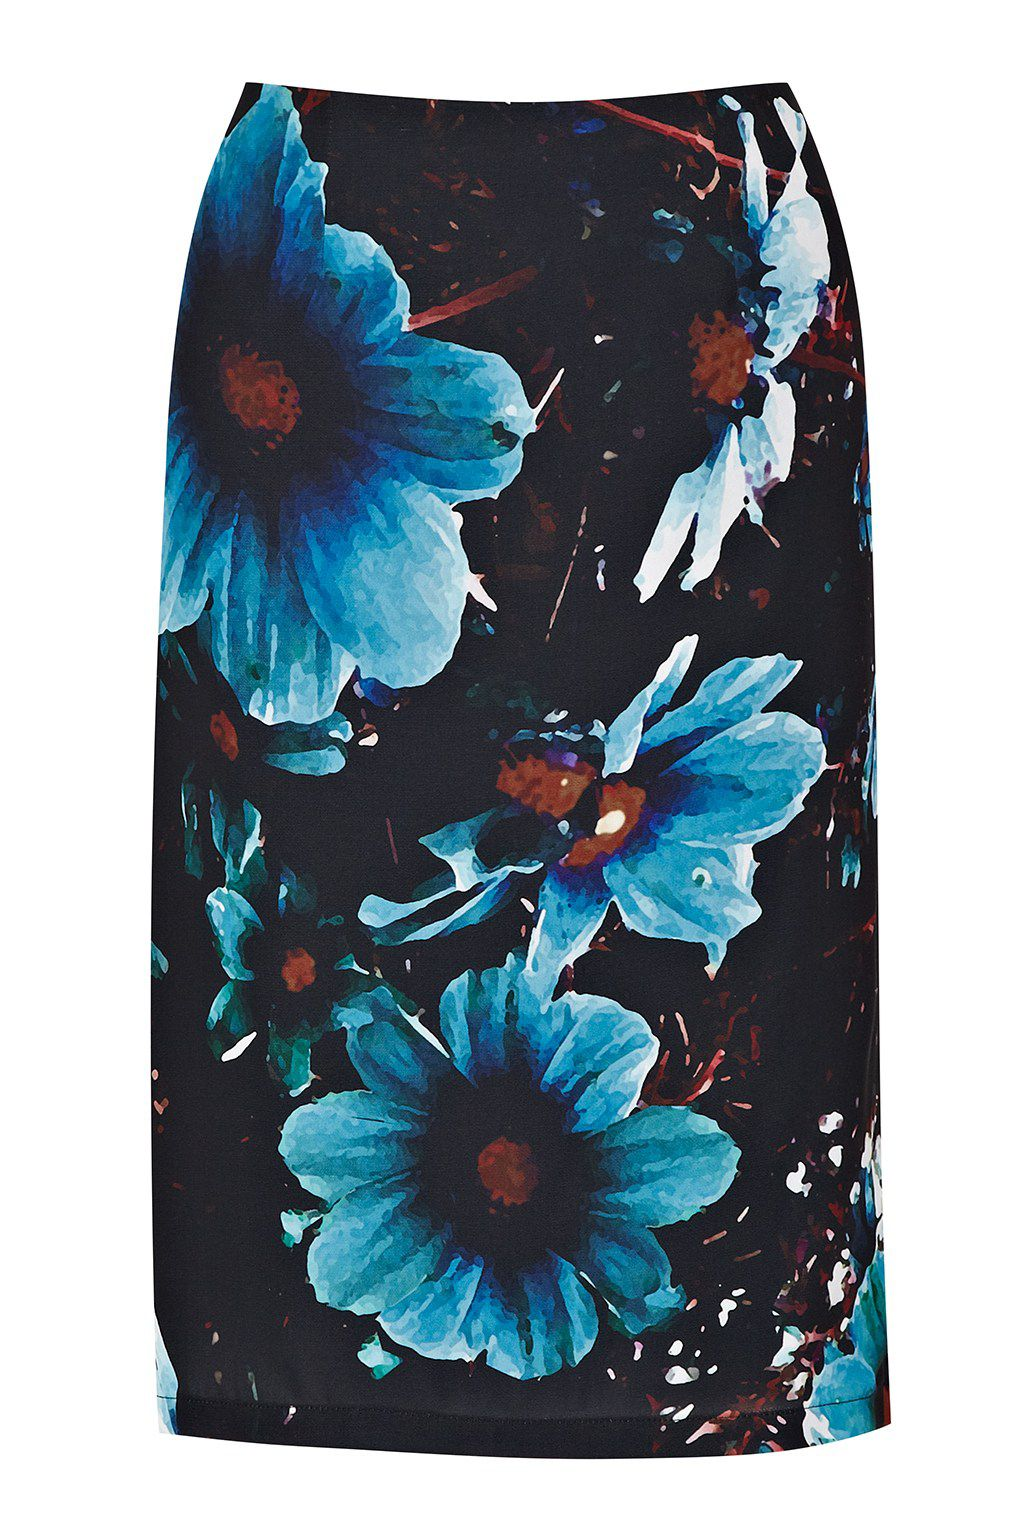 Winter daisy print pencil skirt